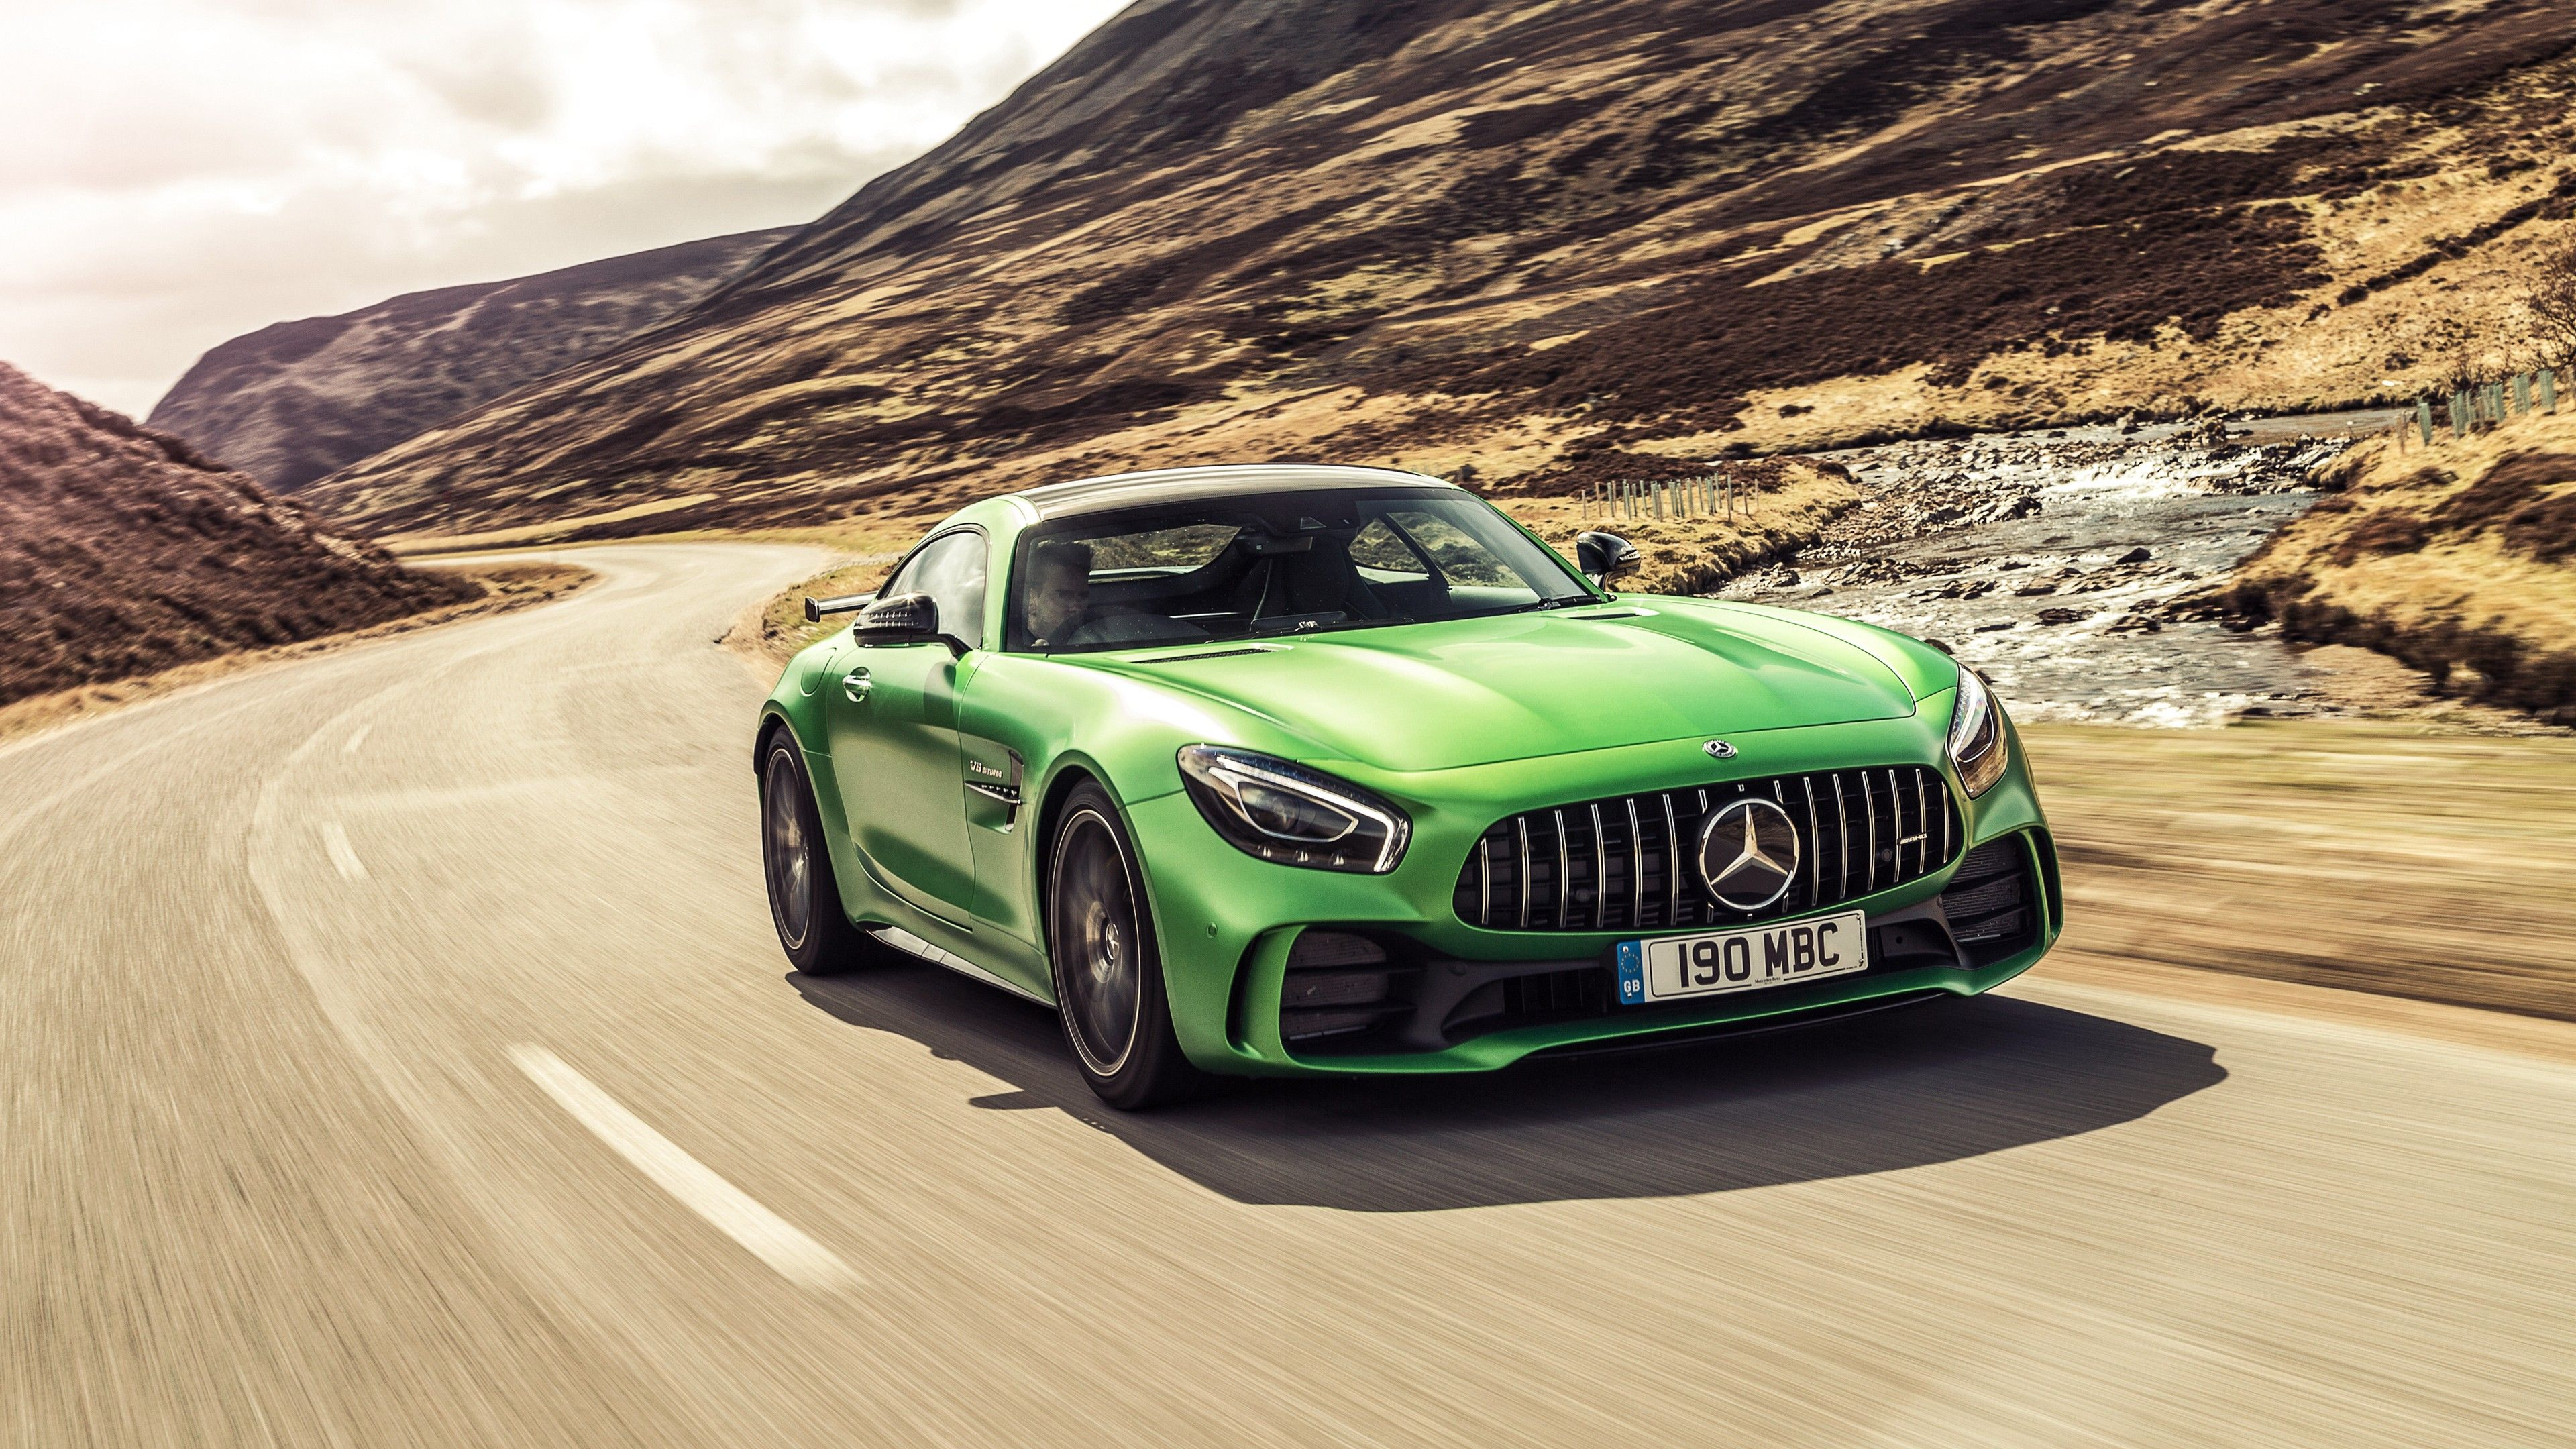 Large Mercedes AMG GT-R Coupe Sports Super Car Wall Poster Art Picture Print